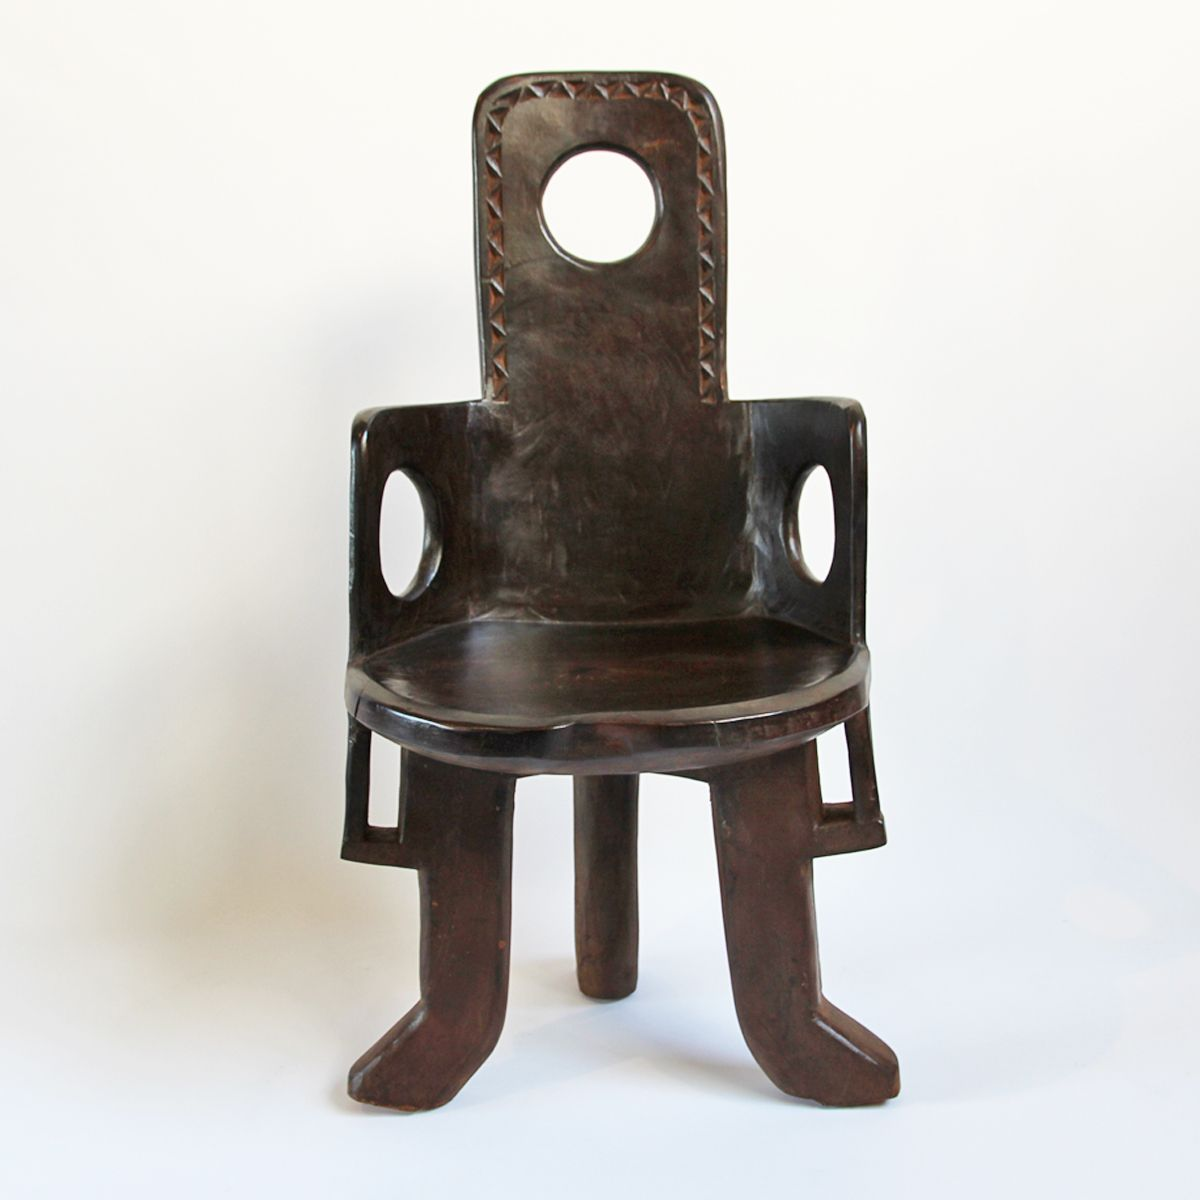 Original hand carved wood jima tribal chair from ethiopia beautiful